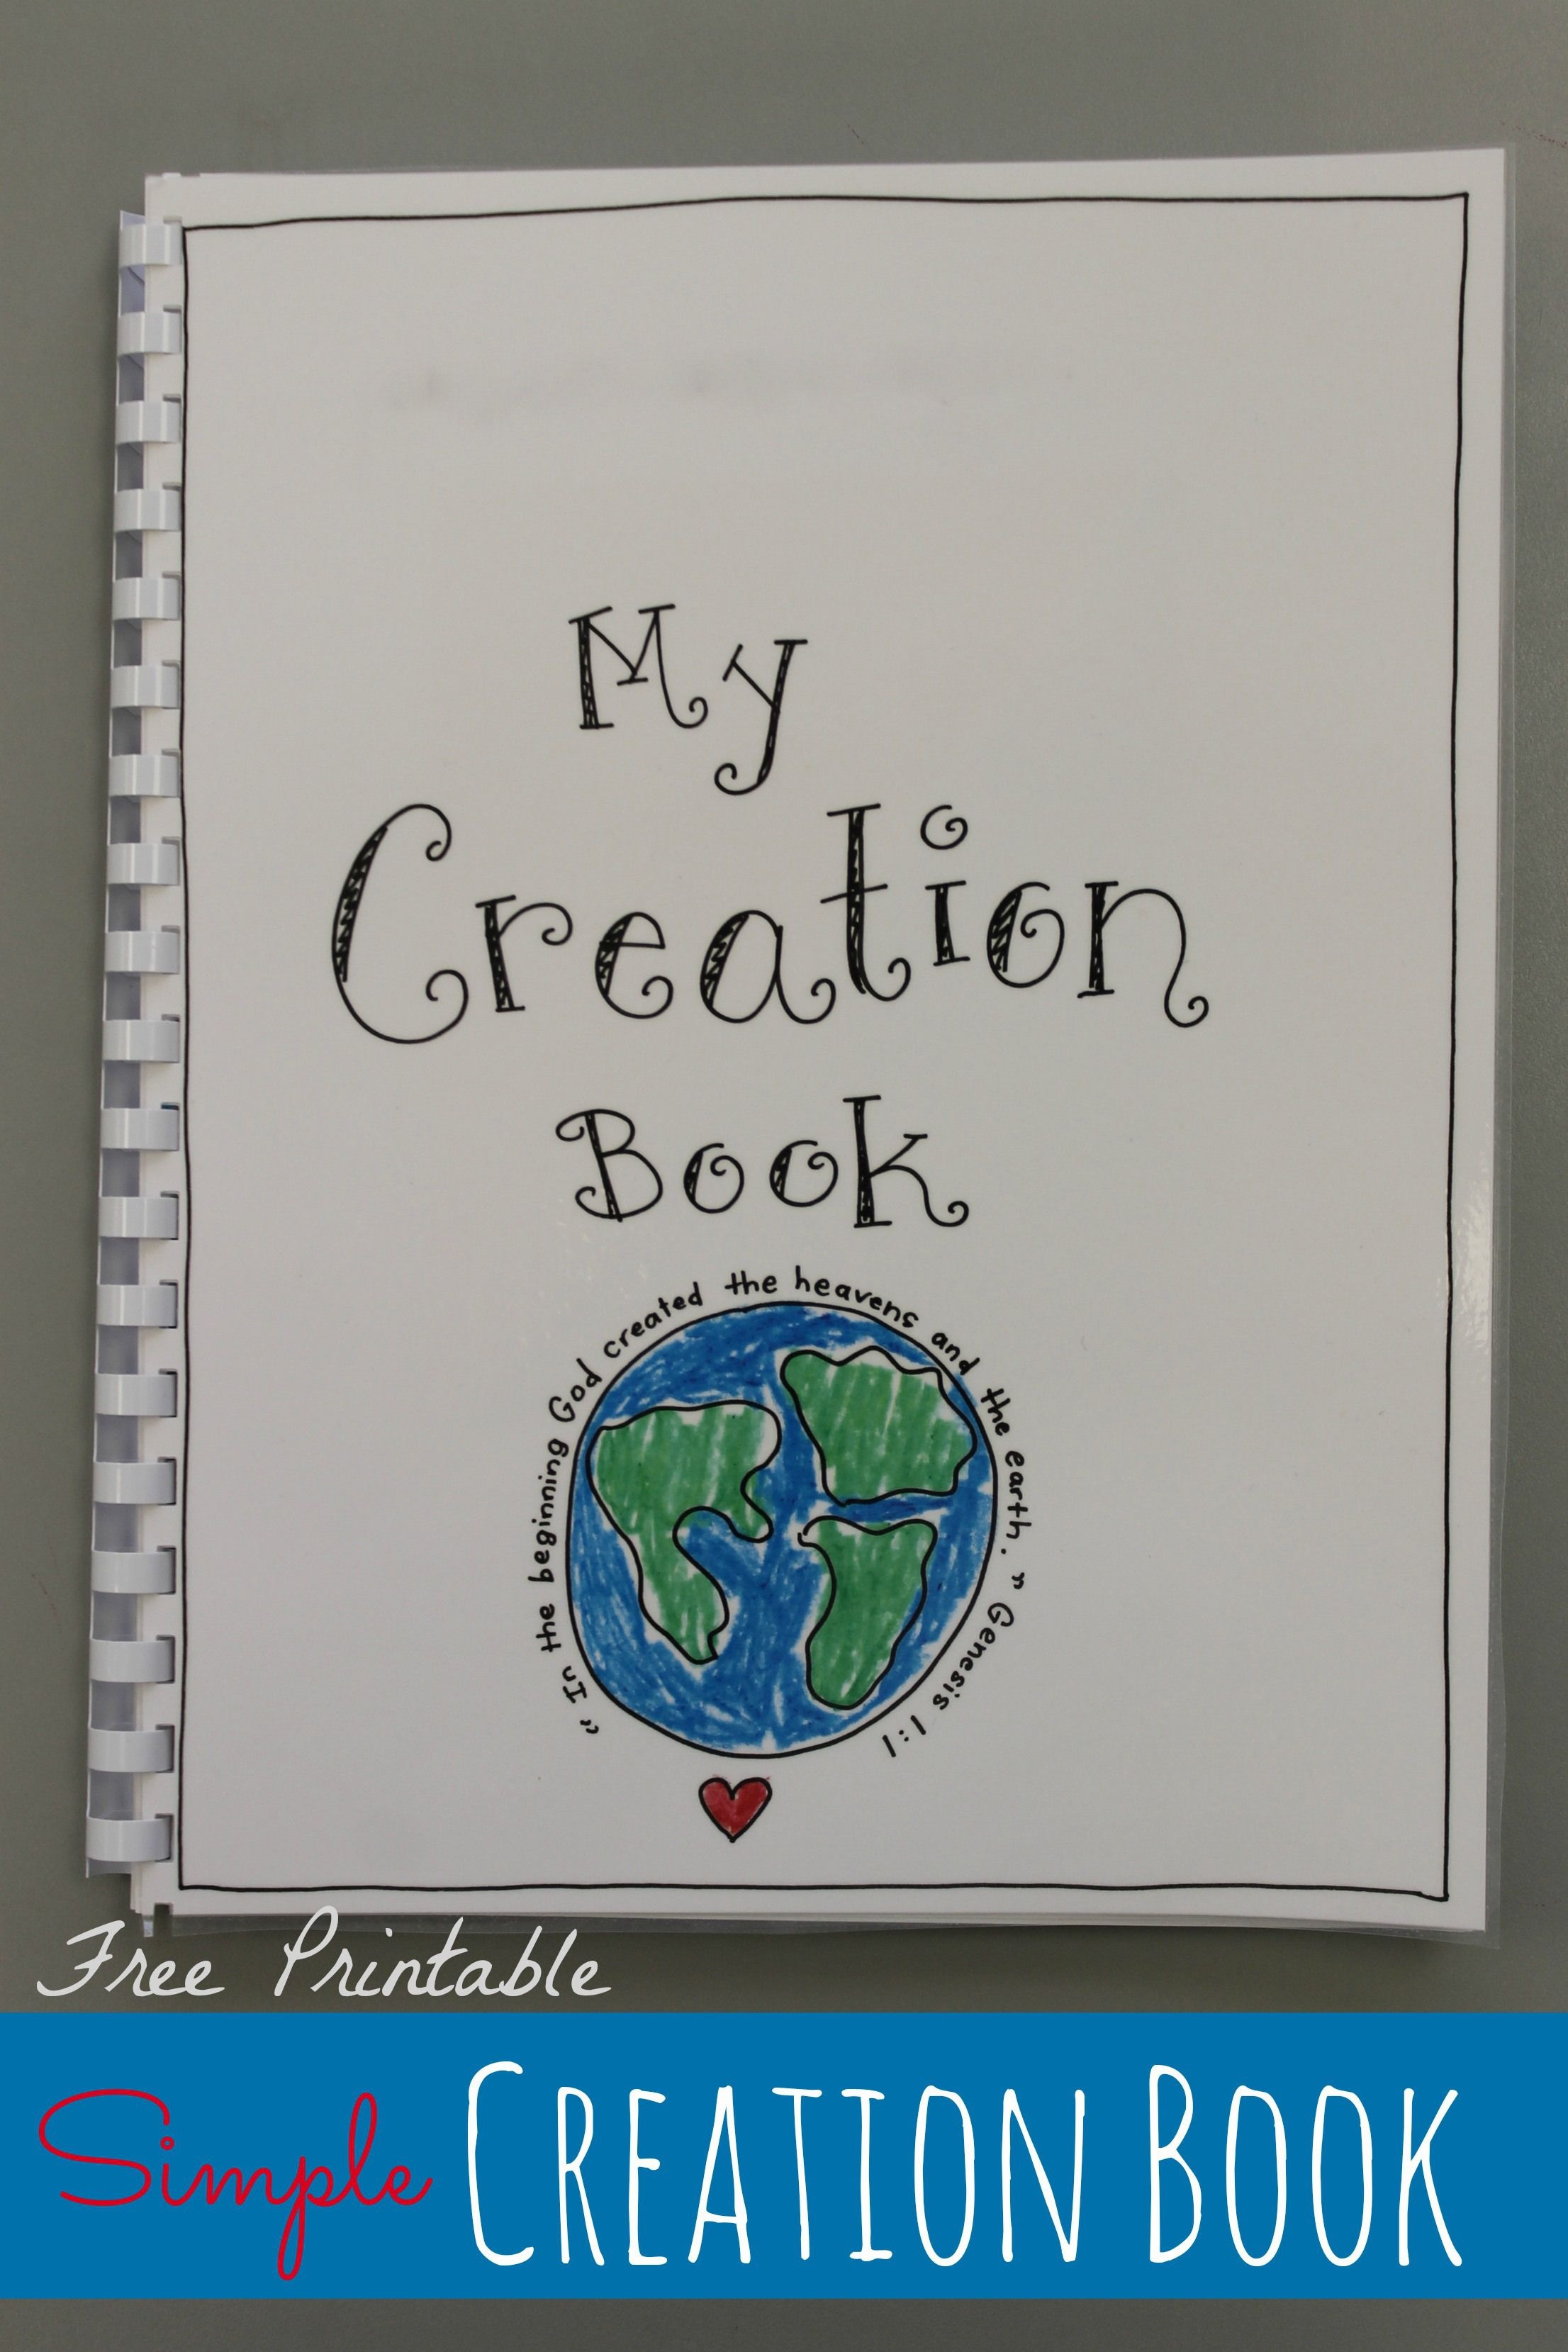 Creation Book - Free Printable | Free Printables | Preschool Bible - Free Printable Sunday School Crafts